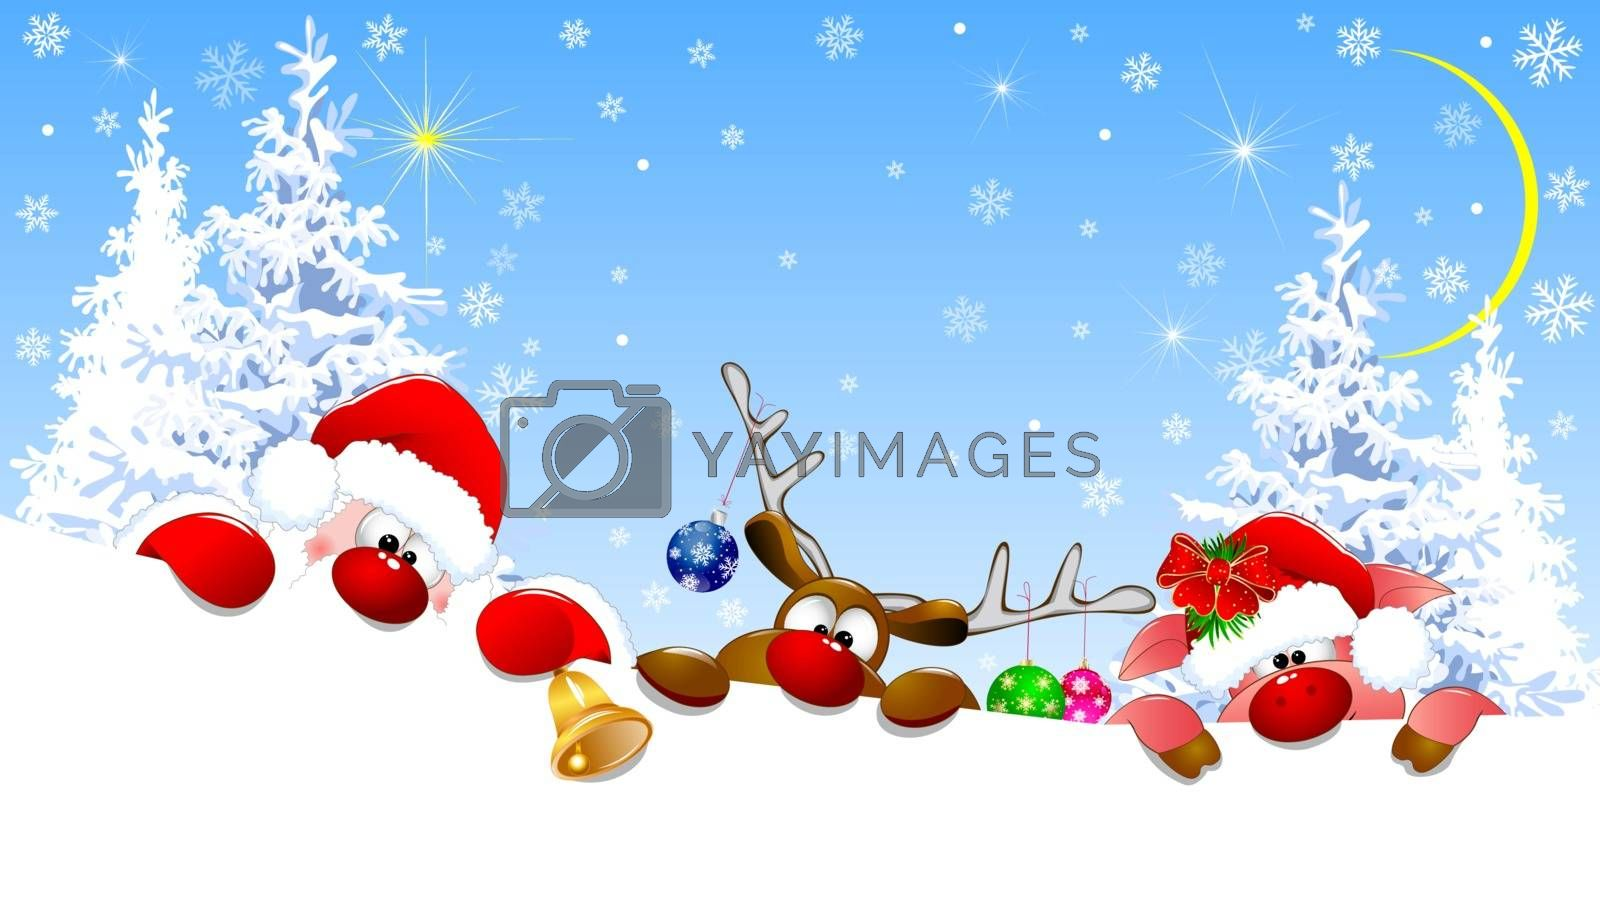 Santa Claus, deer and piglet with Christmas decorations in a winter forest. On the eve of Christmas.